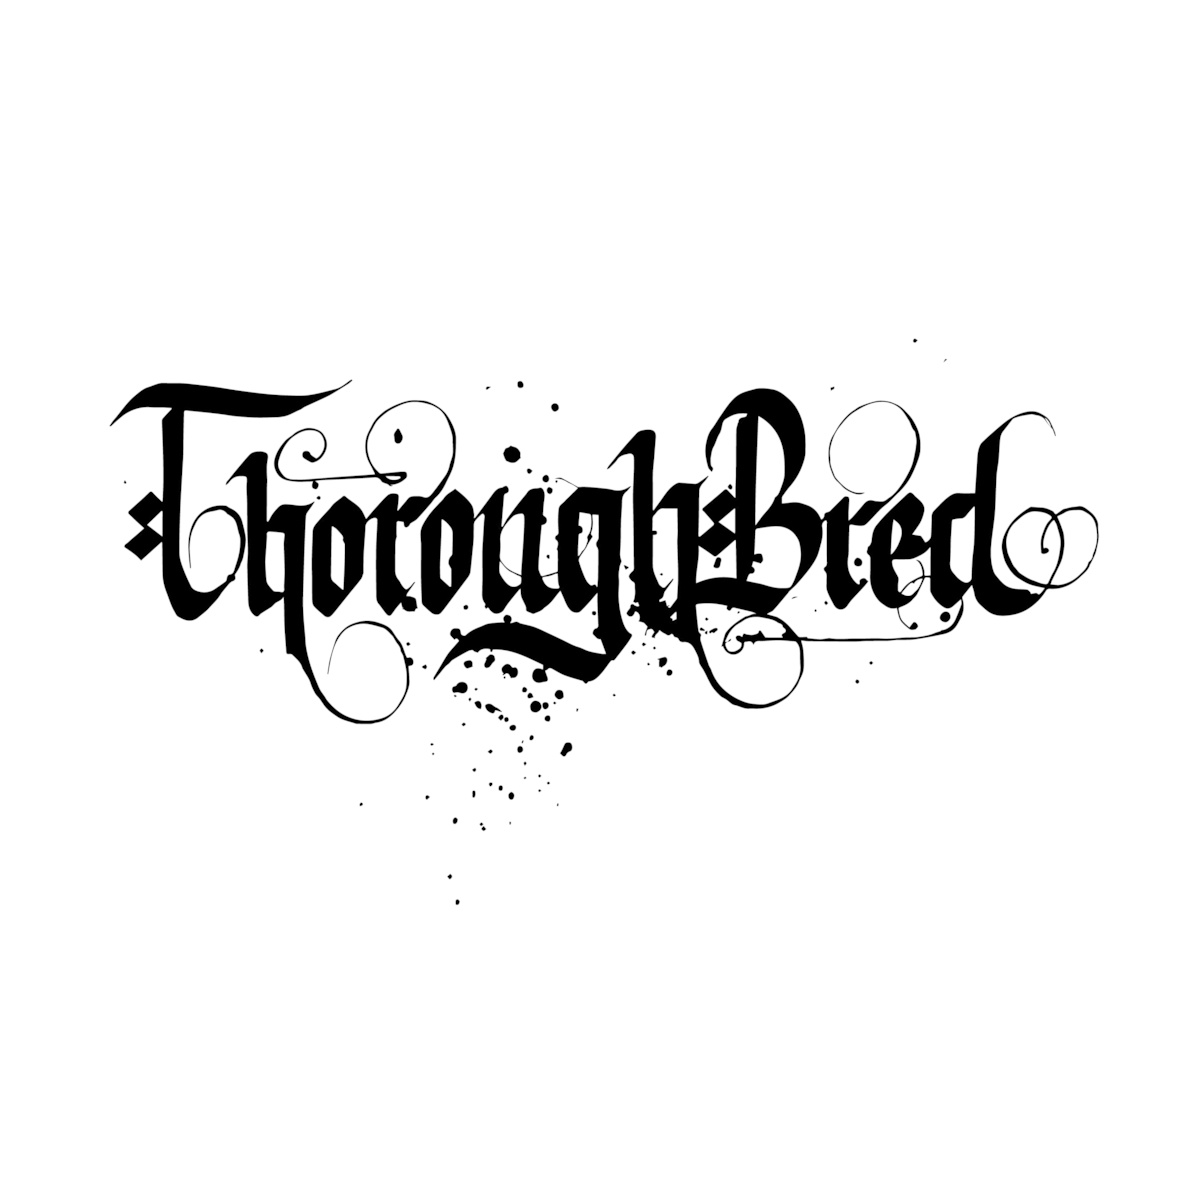 Theme - Thorough Bred